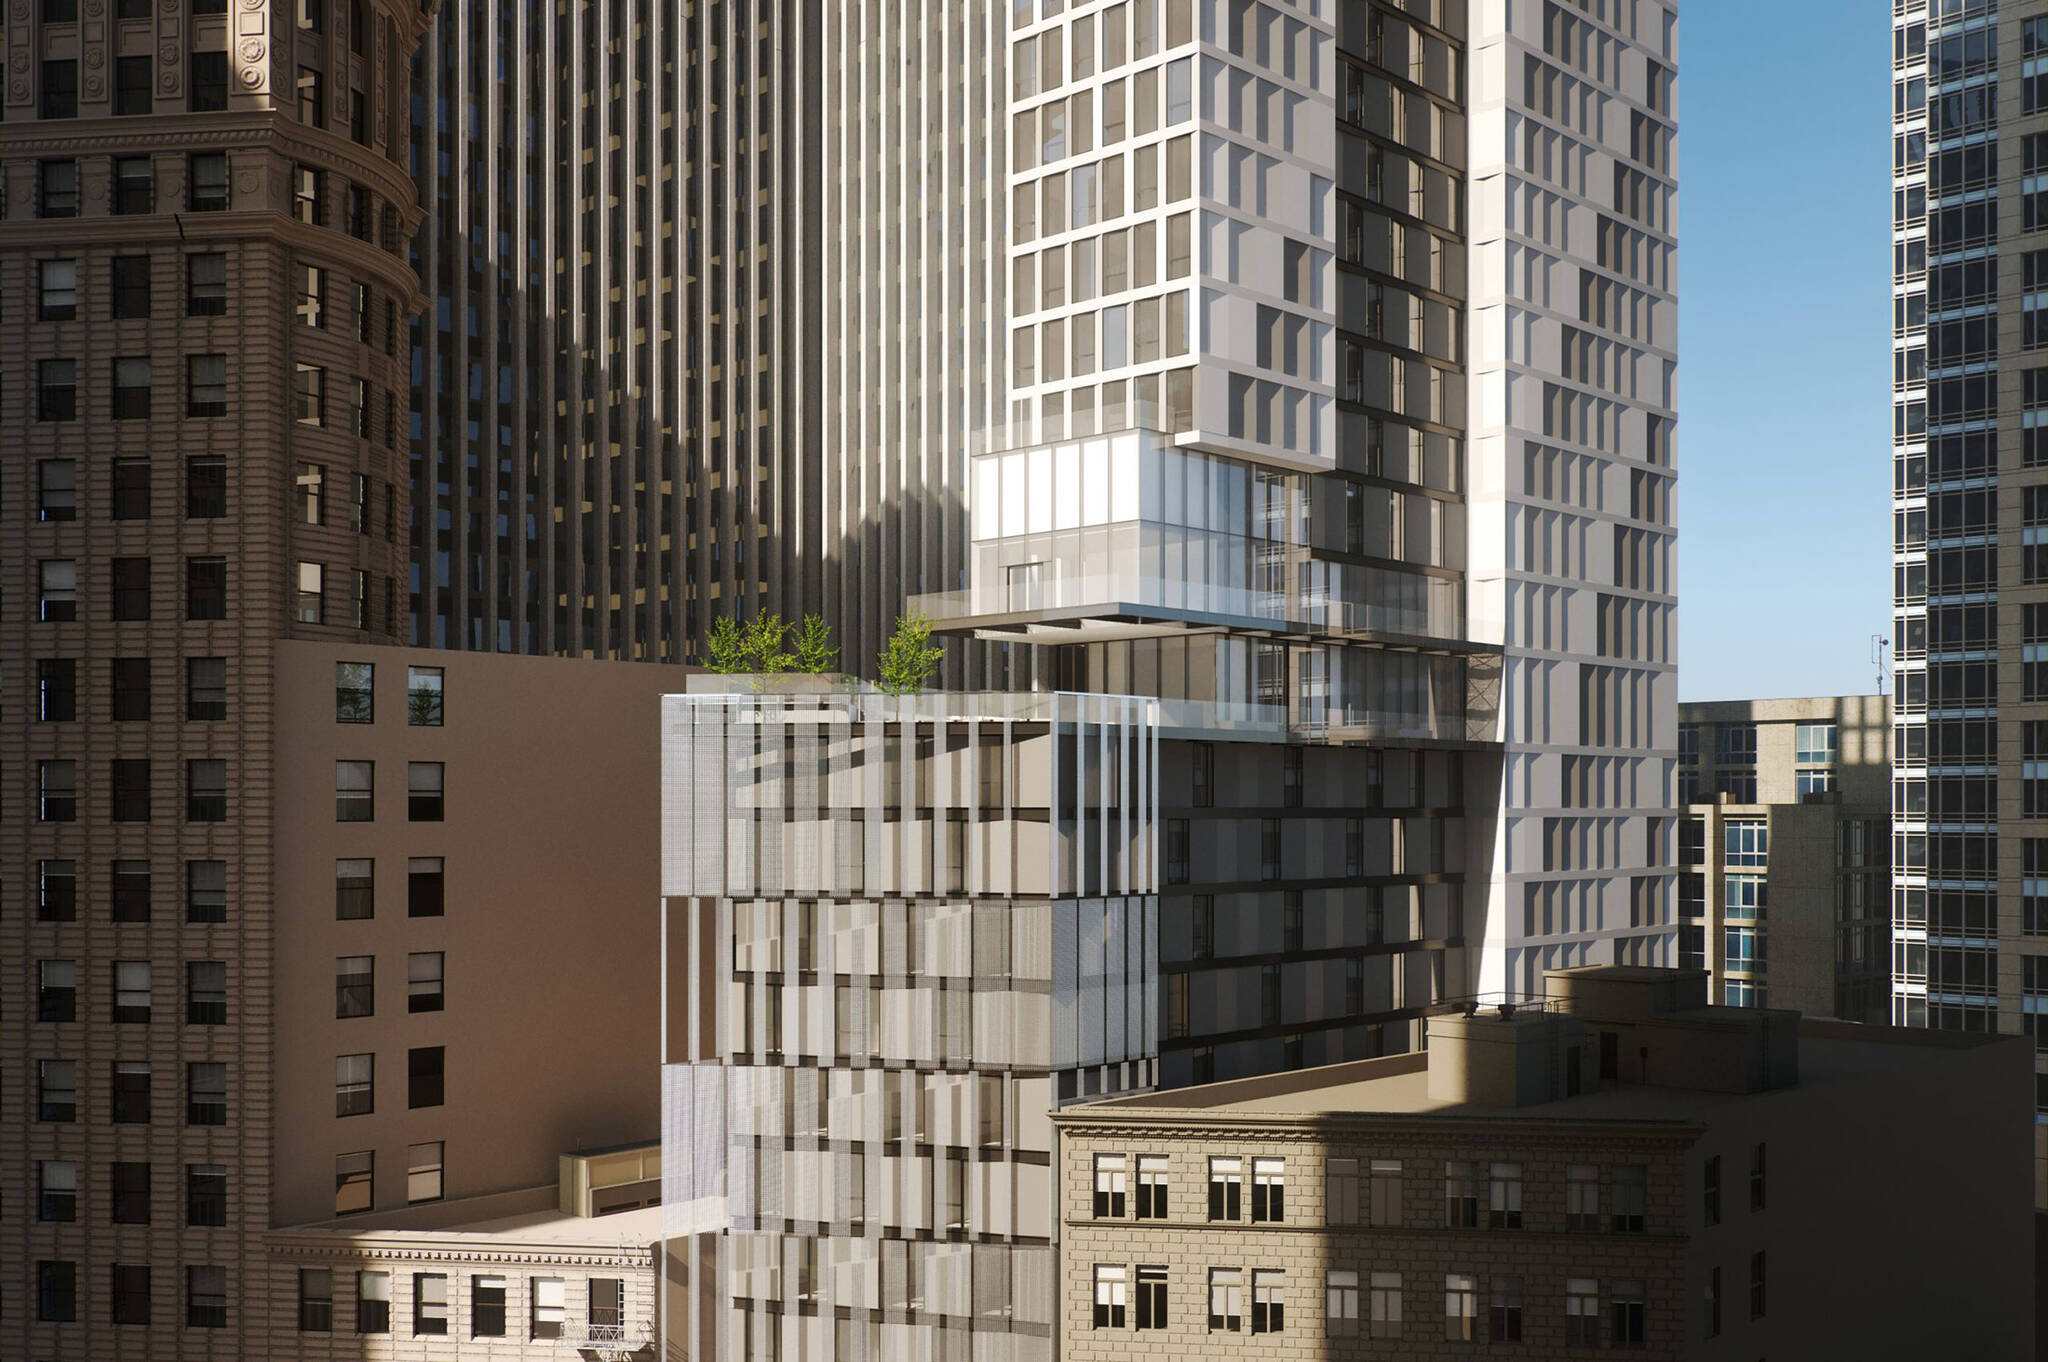 San Francisco modular project located at 570 Market Street on the Financial District of San Francisco, California designed by the architecture studio Danny Forster & Architecture